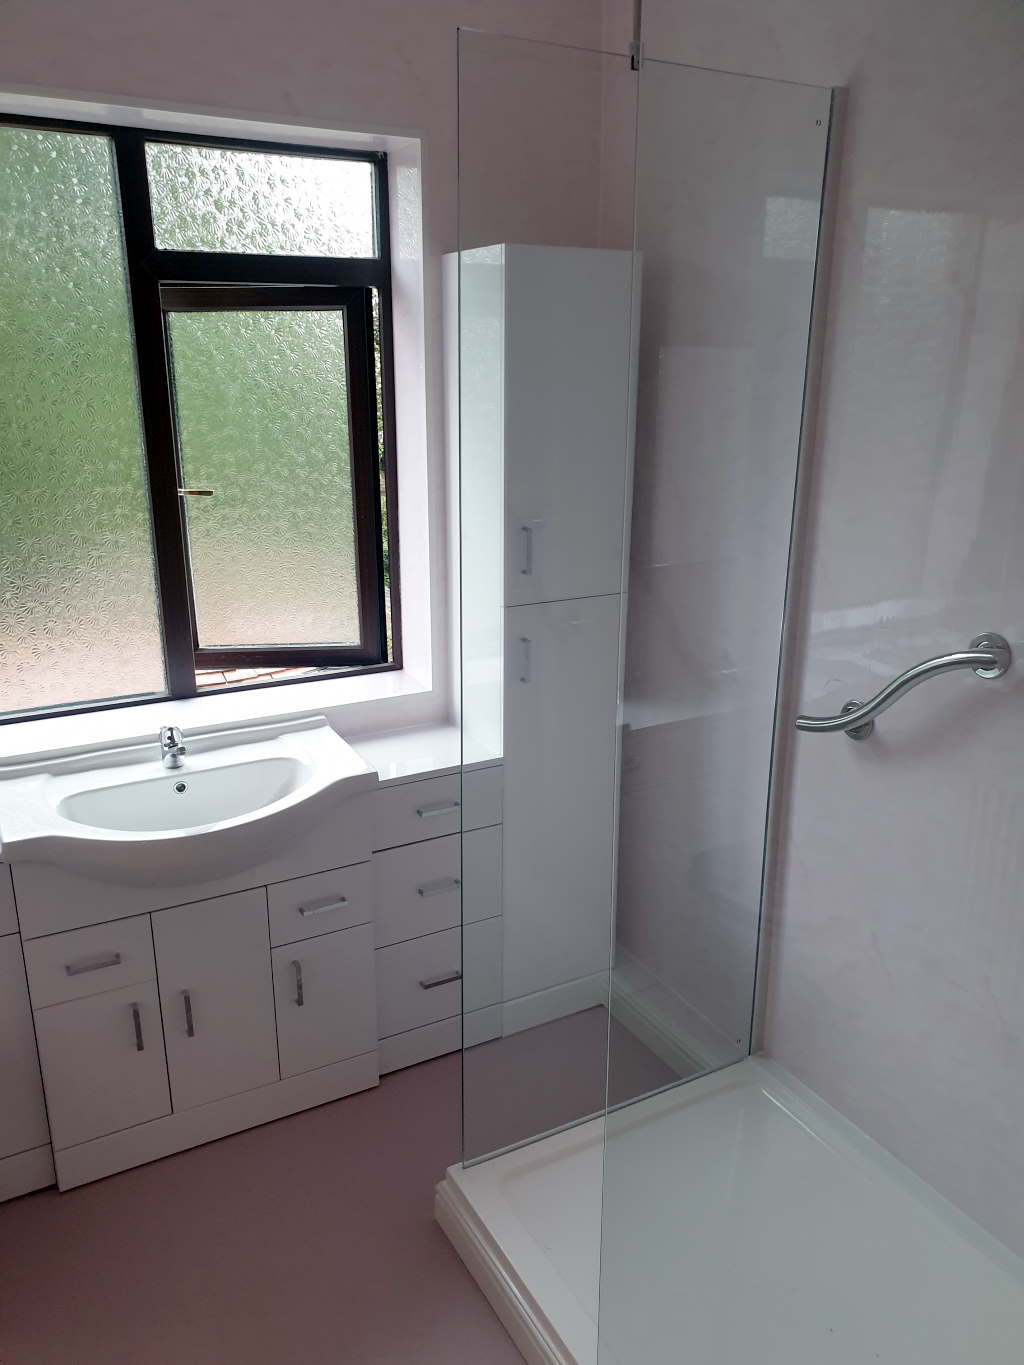 New Ensuite Bathroom Fitter in Walsall Mrs Holmes Walsall Shower Room Installer